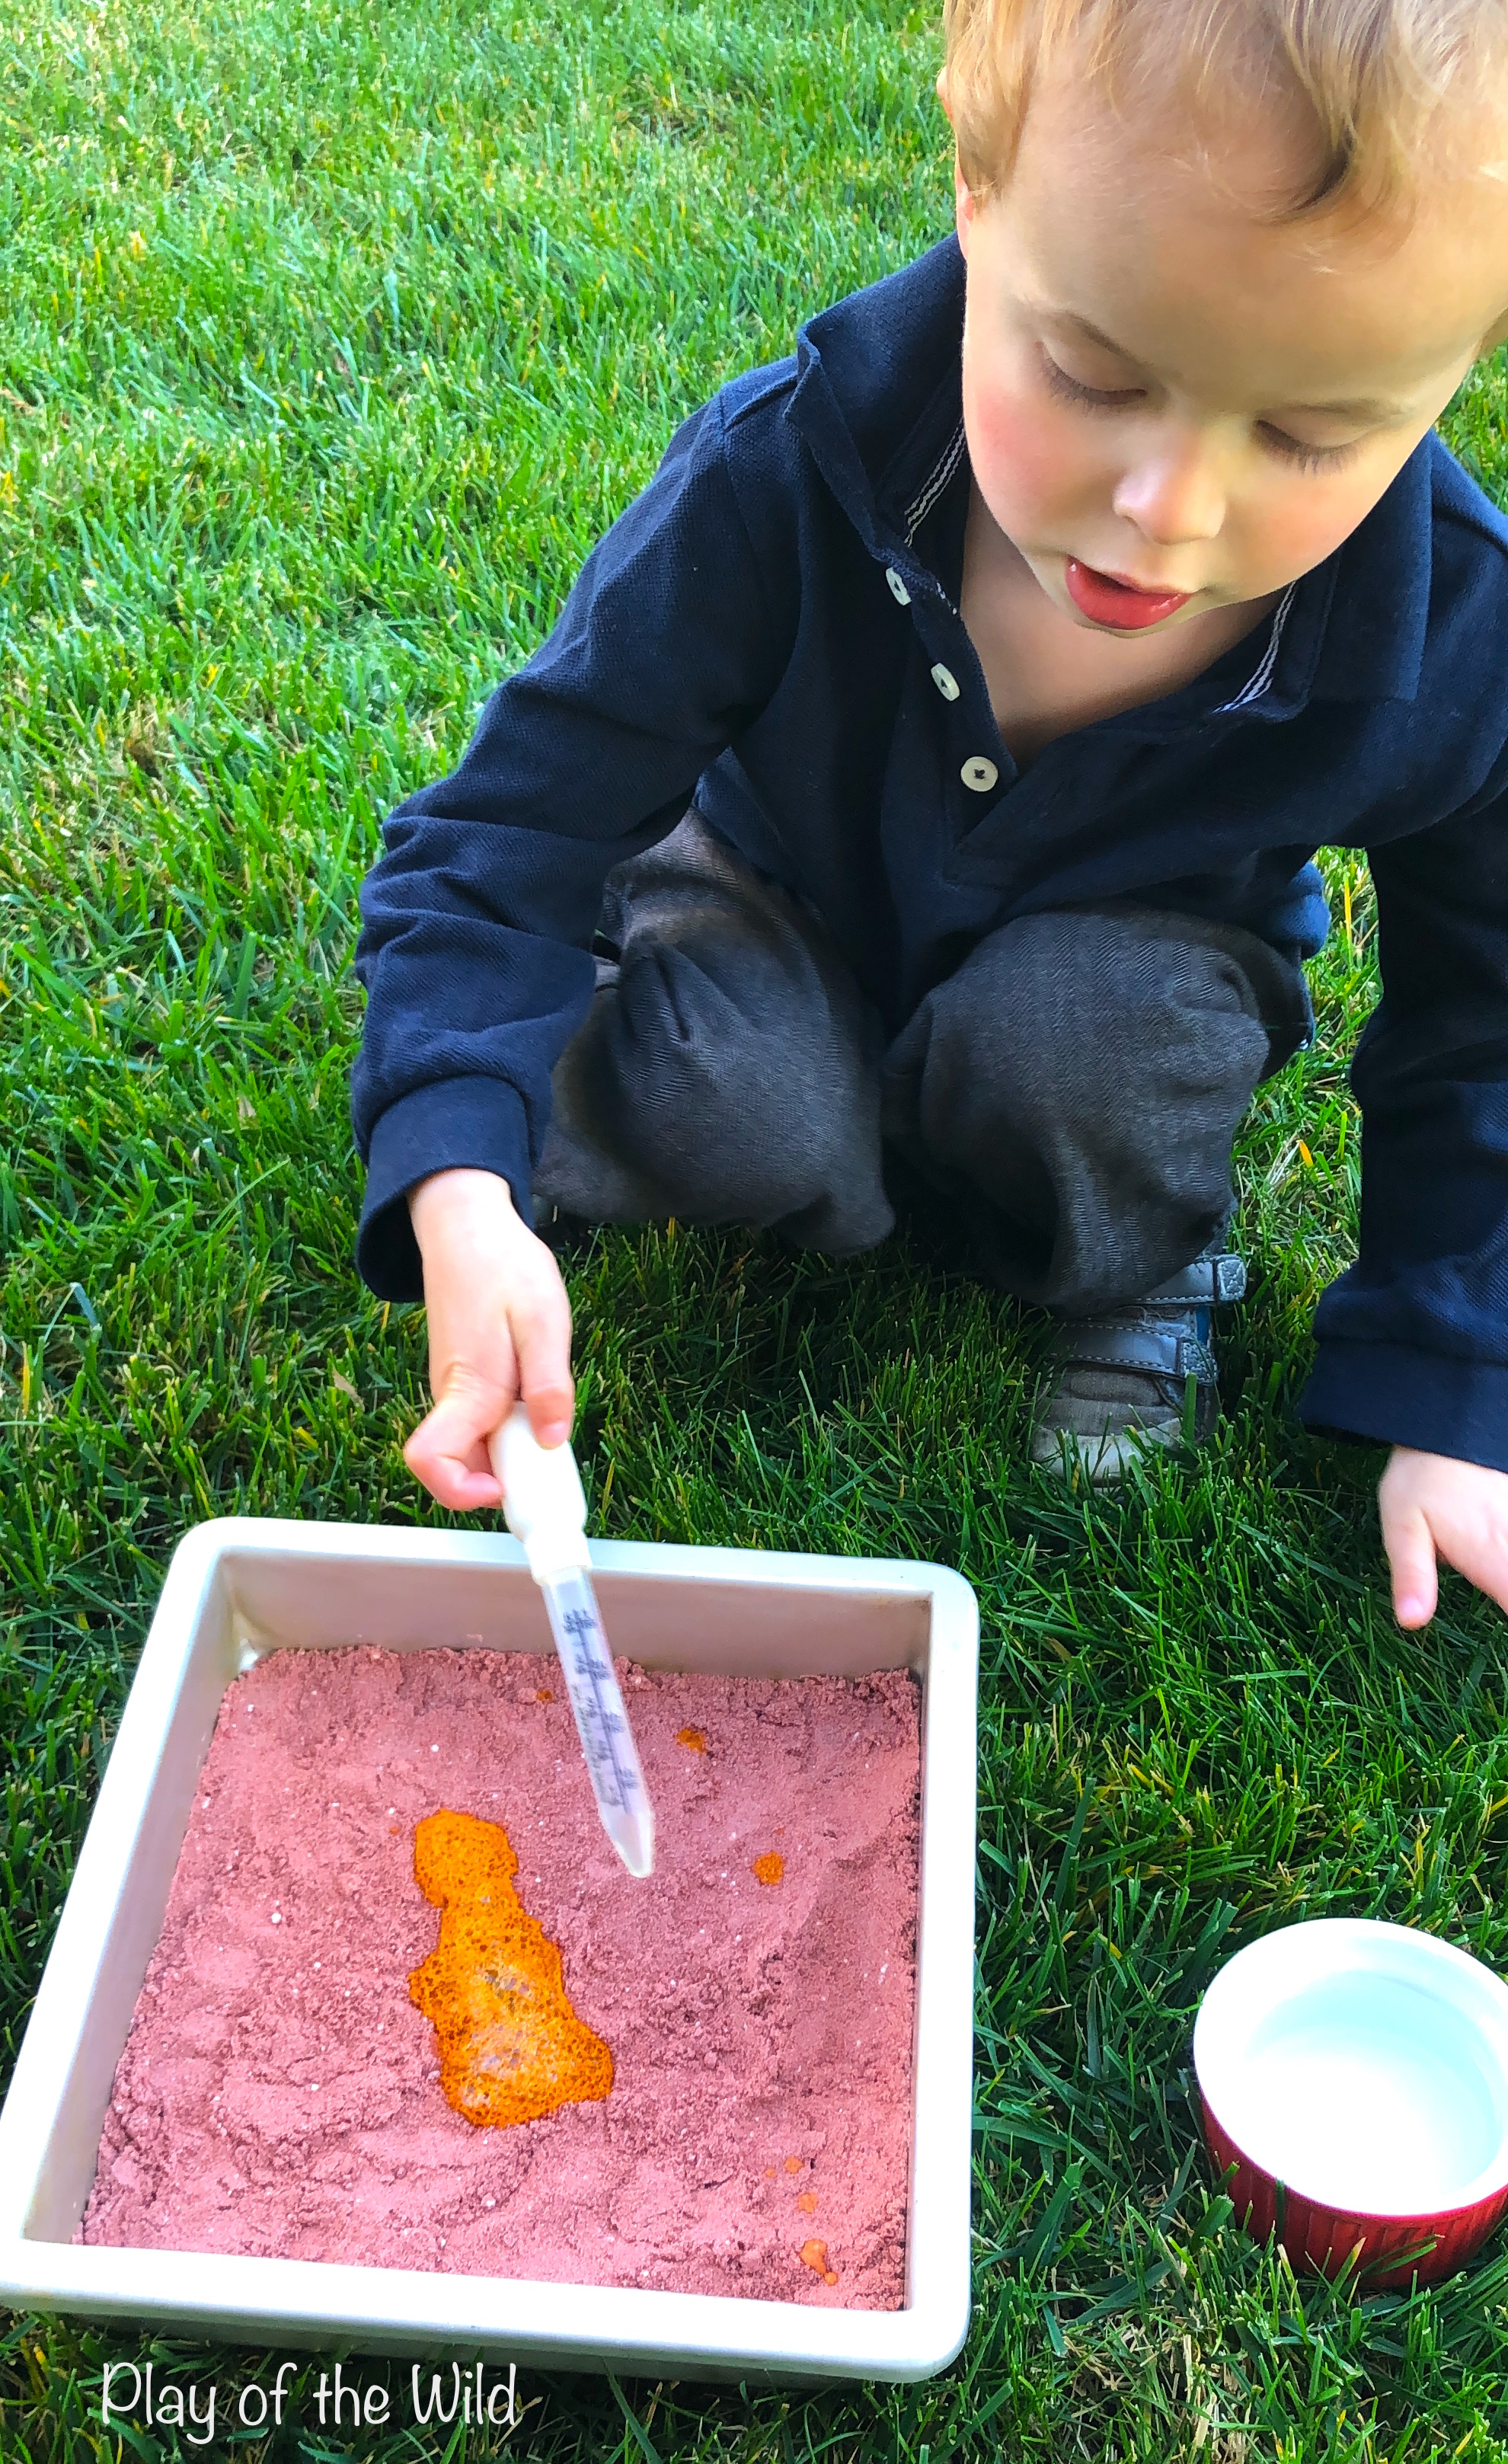 baking soda and vinegar science experiment. turmeric ph indicator